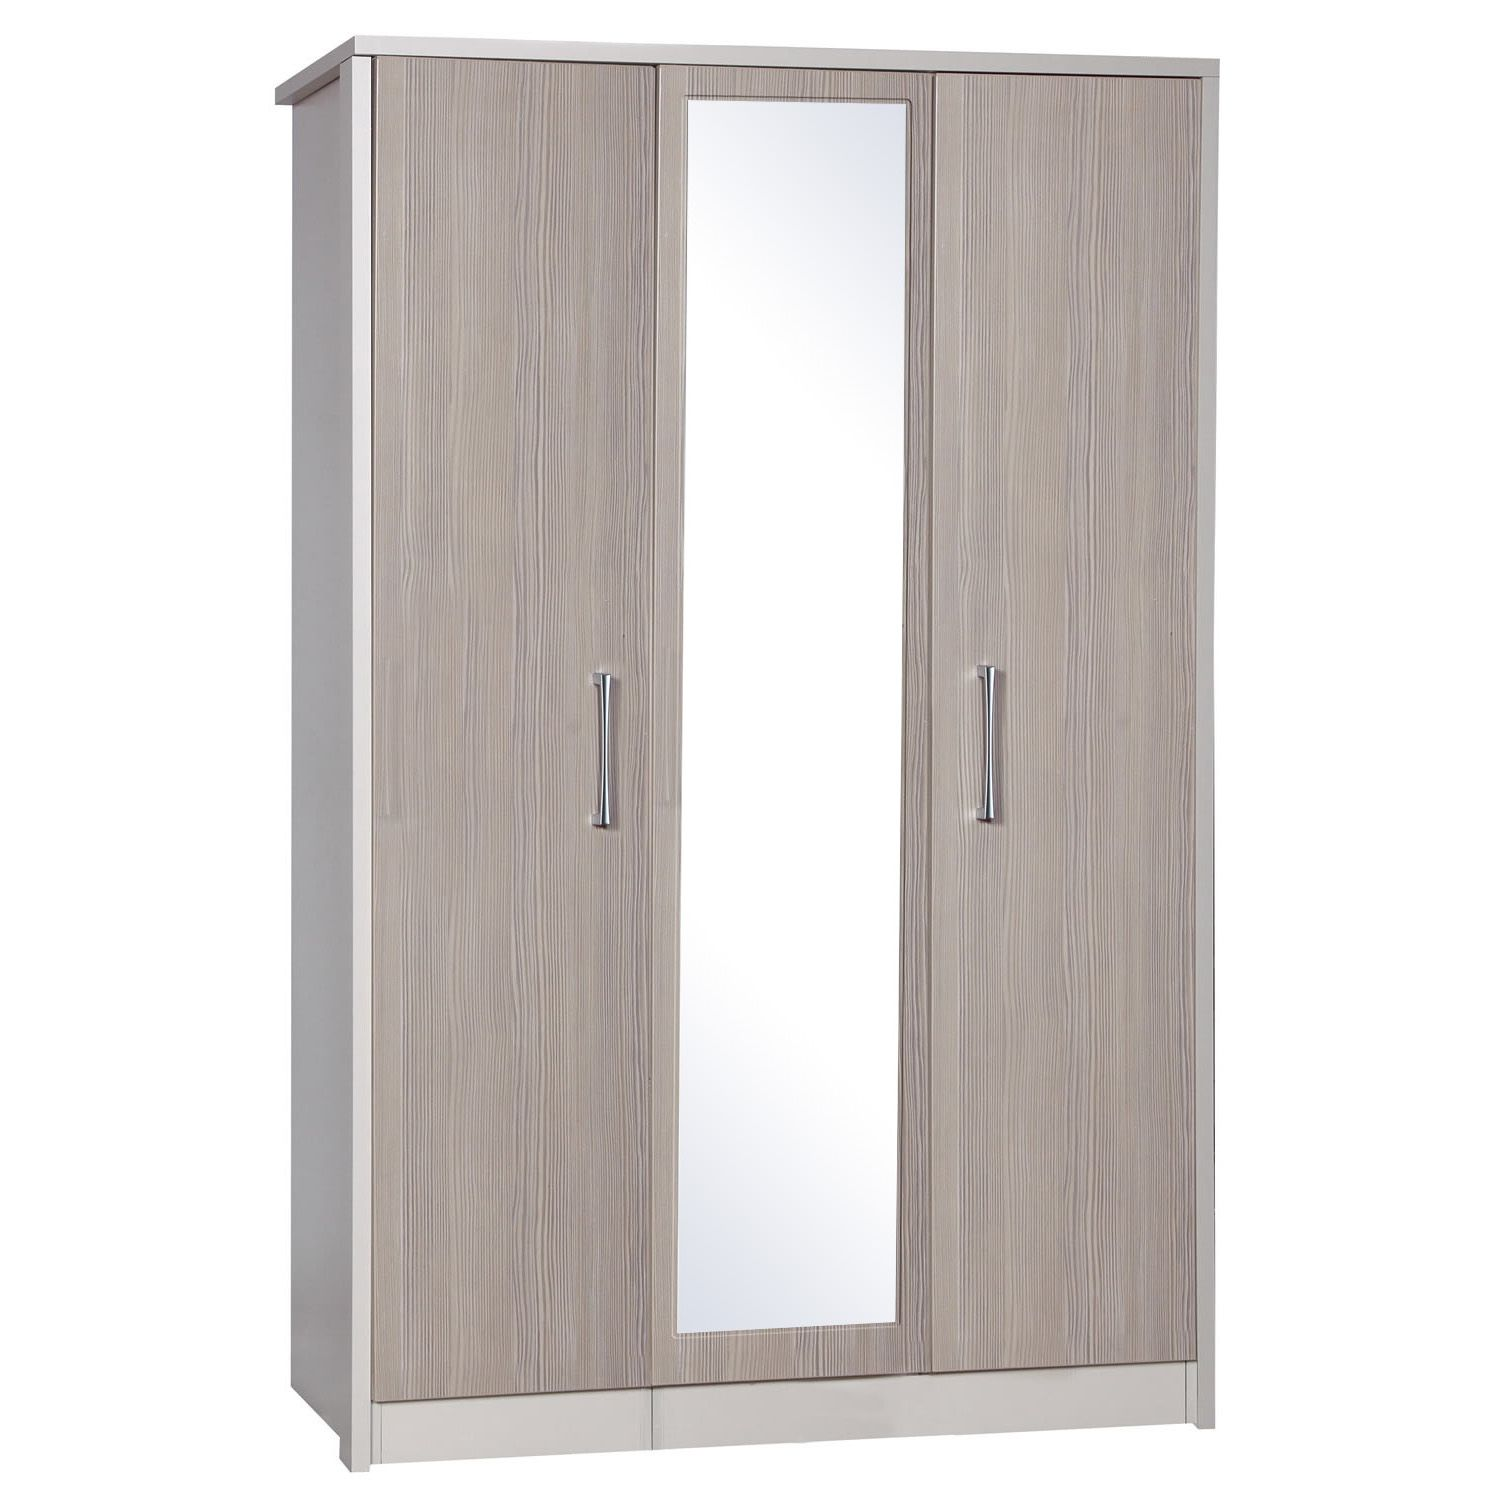 Avola Champagne 3 Door Wardrobe With Mirror Next Day Delivery